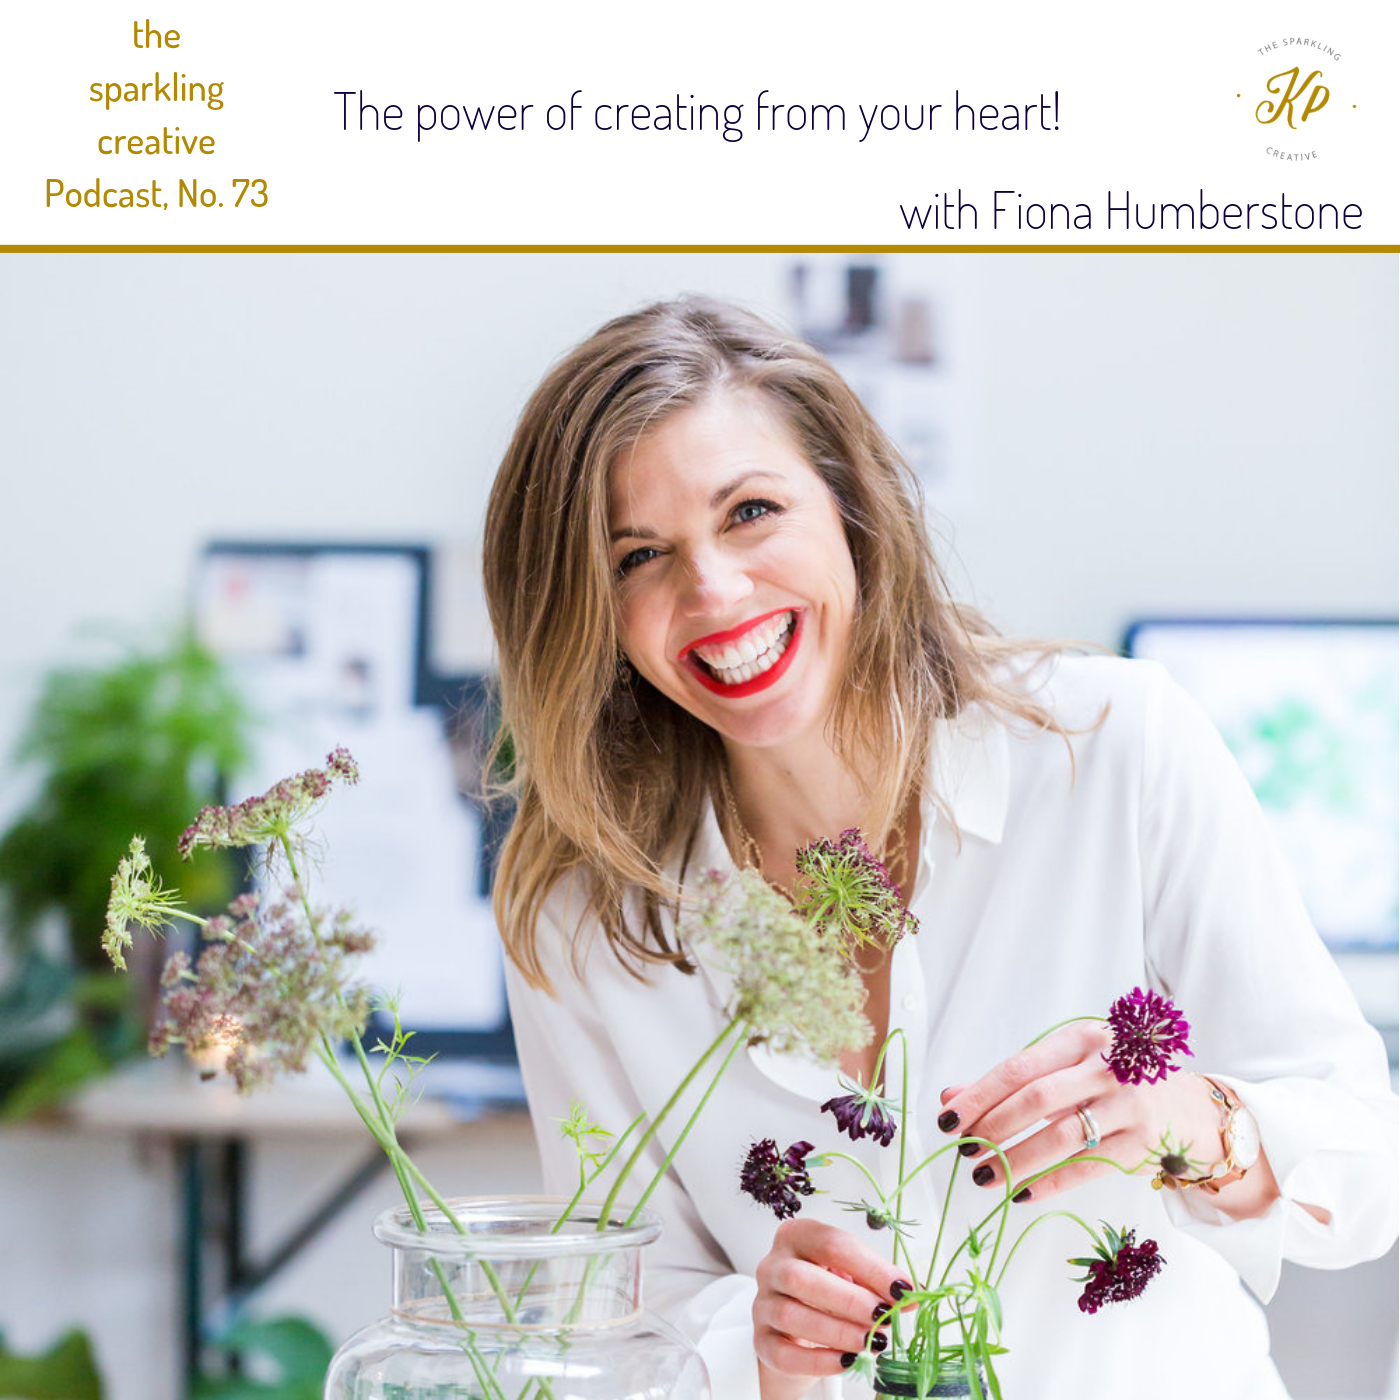 the sparkling creative Podcast, Episode 73: The power of creating from your heart. With Fiona Humberstone. www.kerstinpressler.com/blog-2/episode73